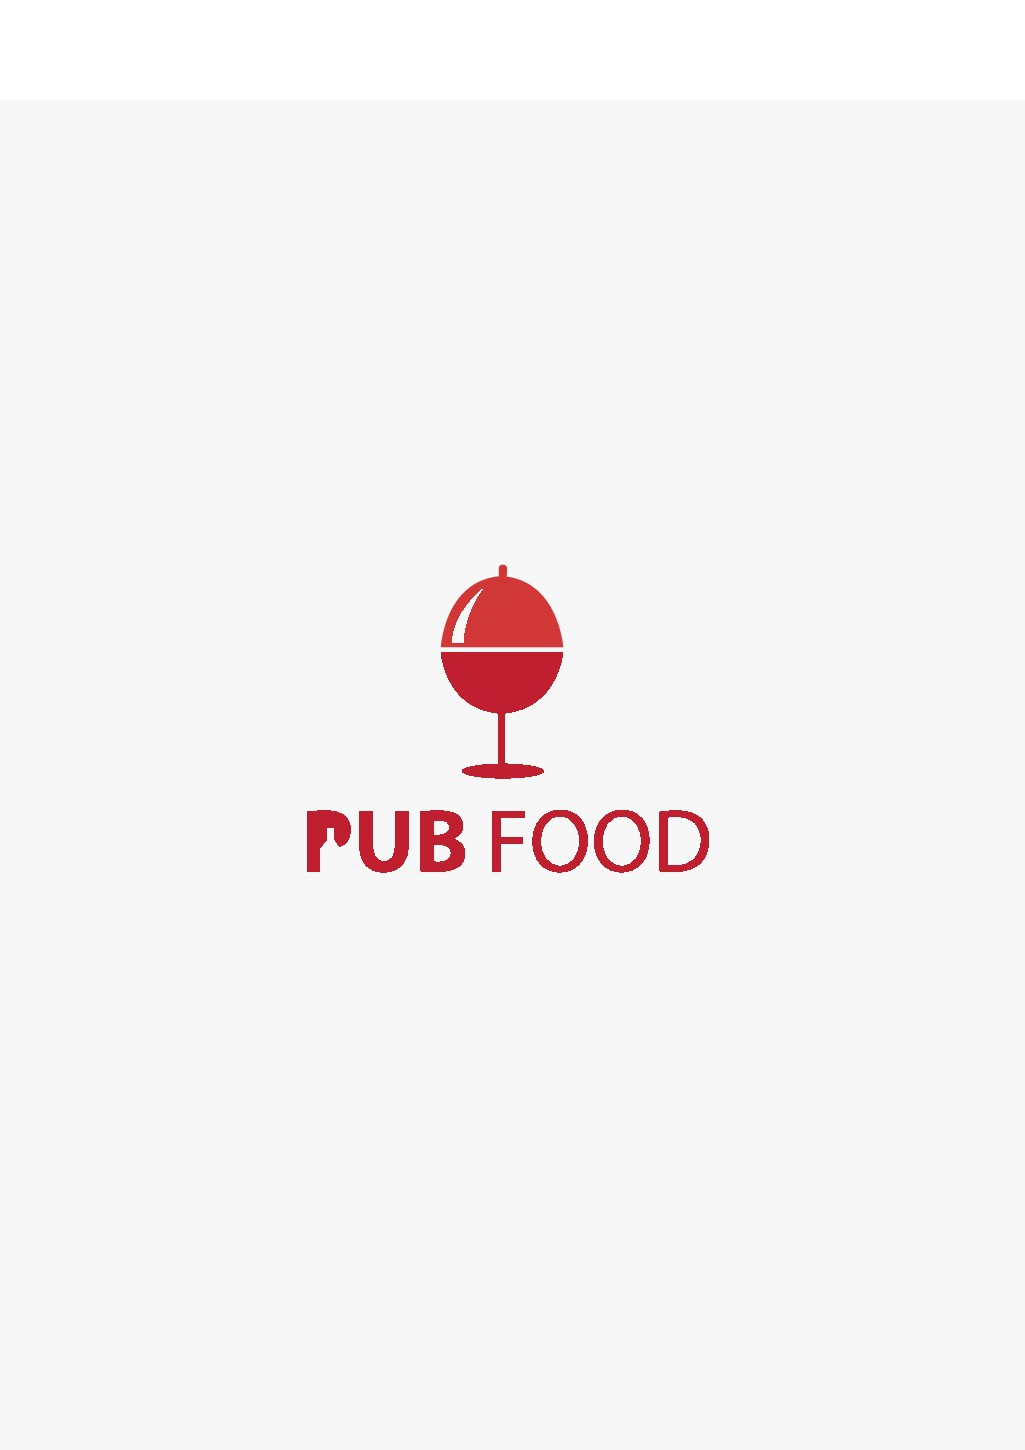 Pub Parma needs a logo designed to capture beer & food lovers attention